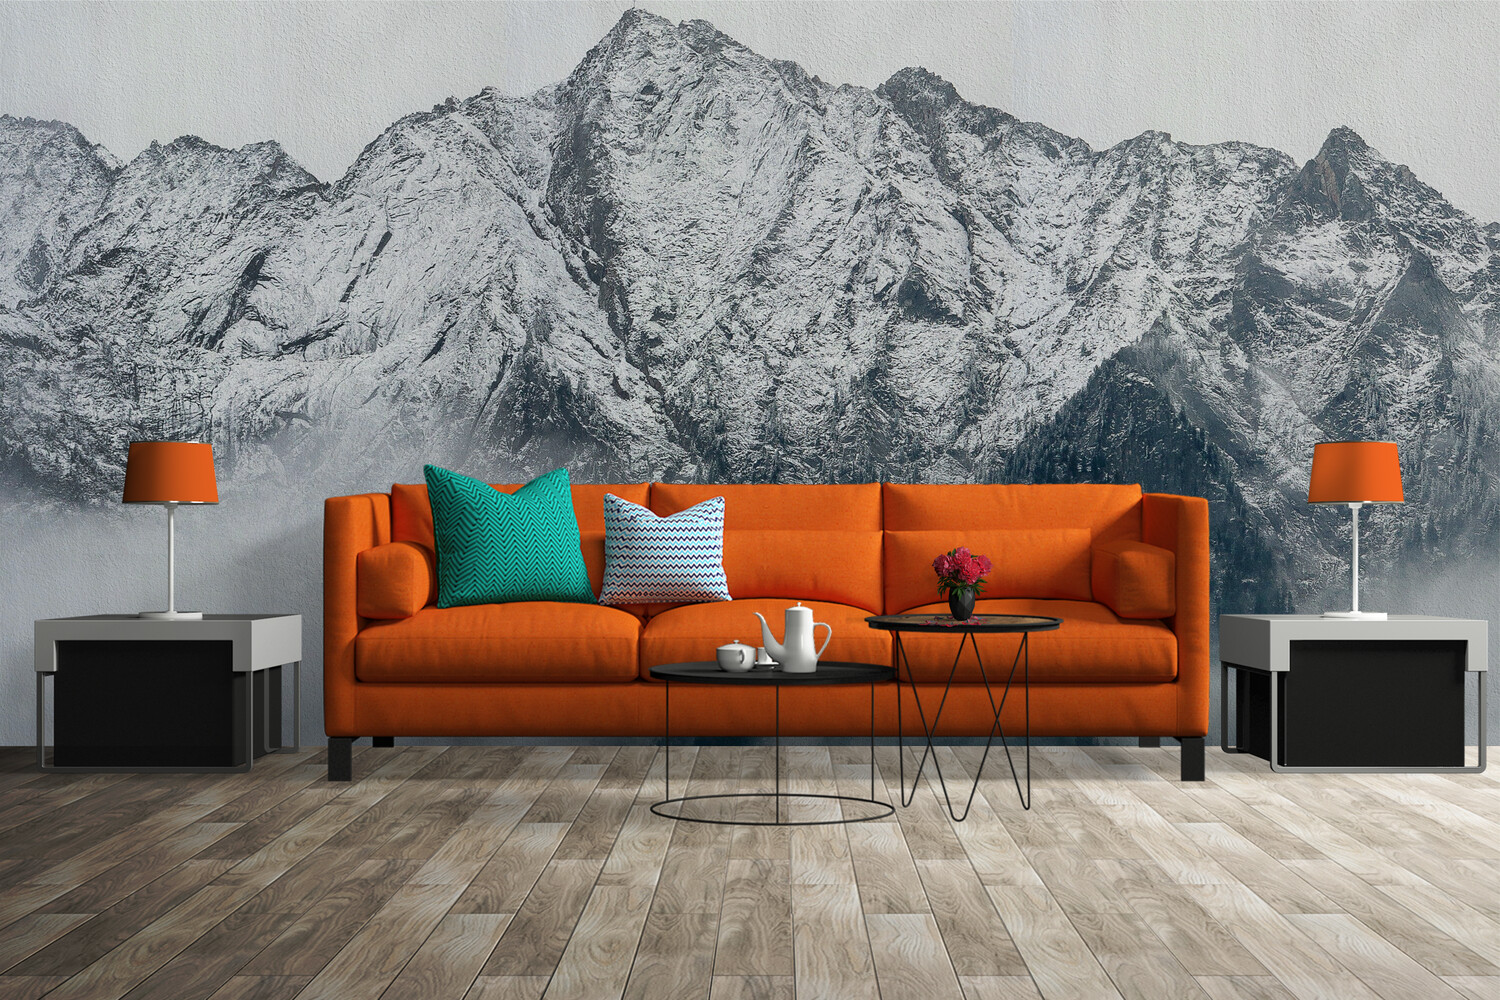 GREYSCALE MOUNTAINSCAPE   Vinyl Wall Mural for Any Room   Removable Vinyl Wallpaper